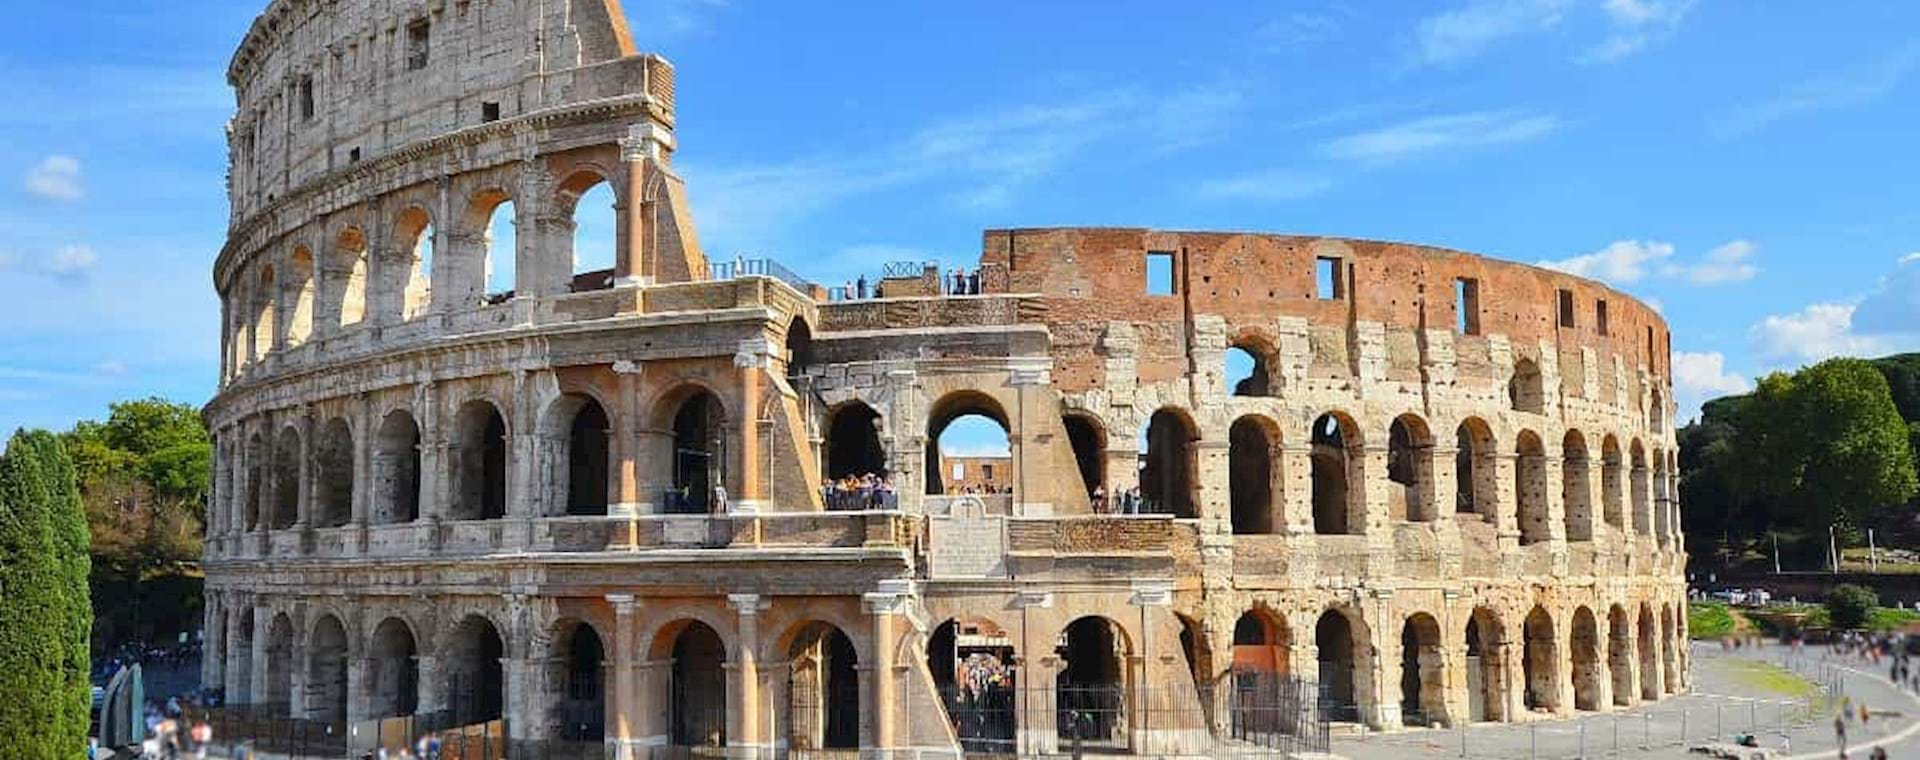 Beautiful view of the Colosseum